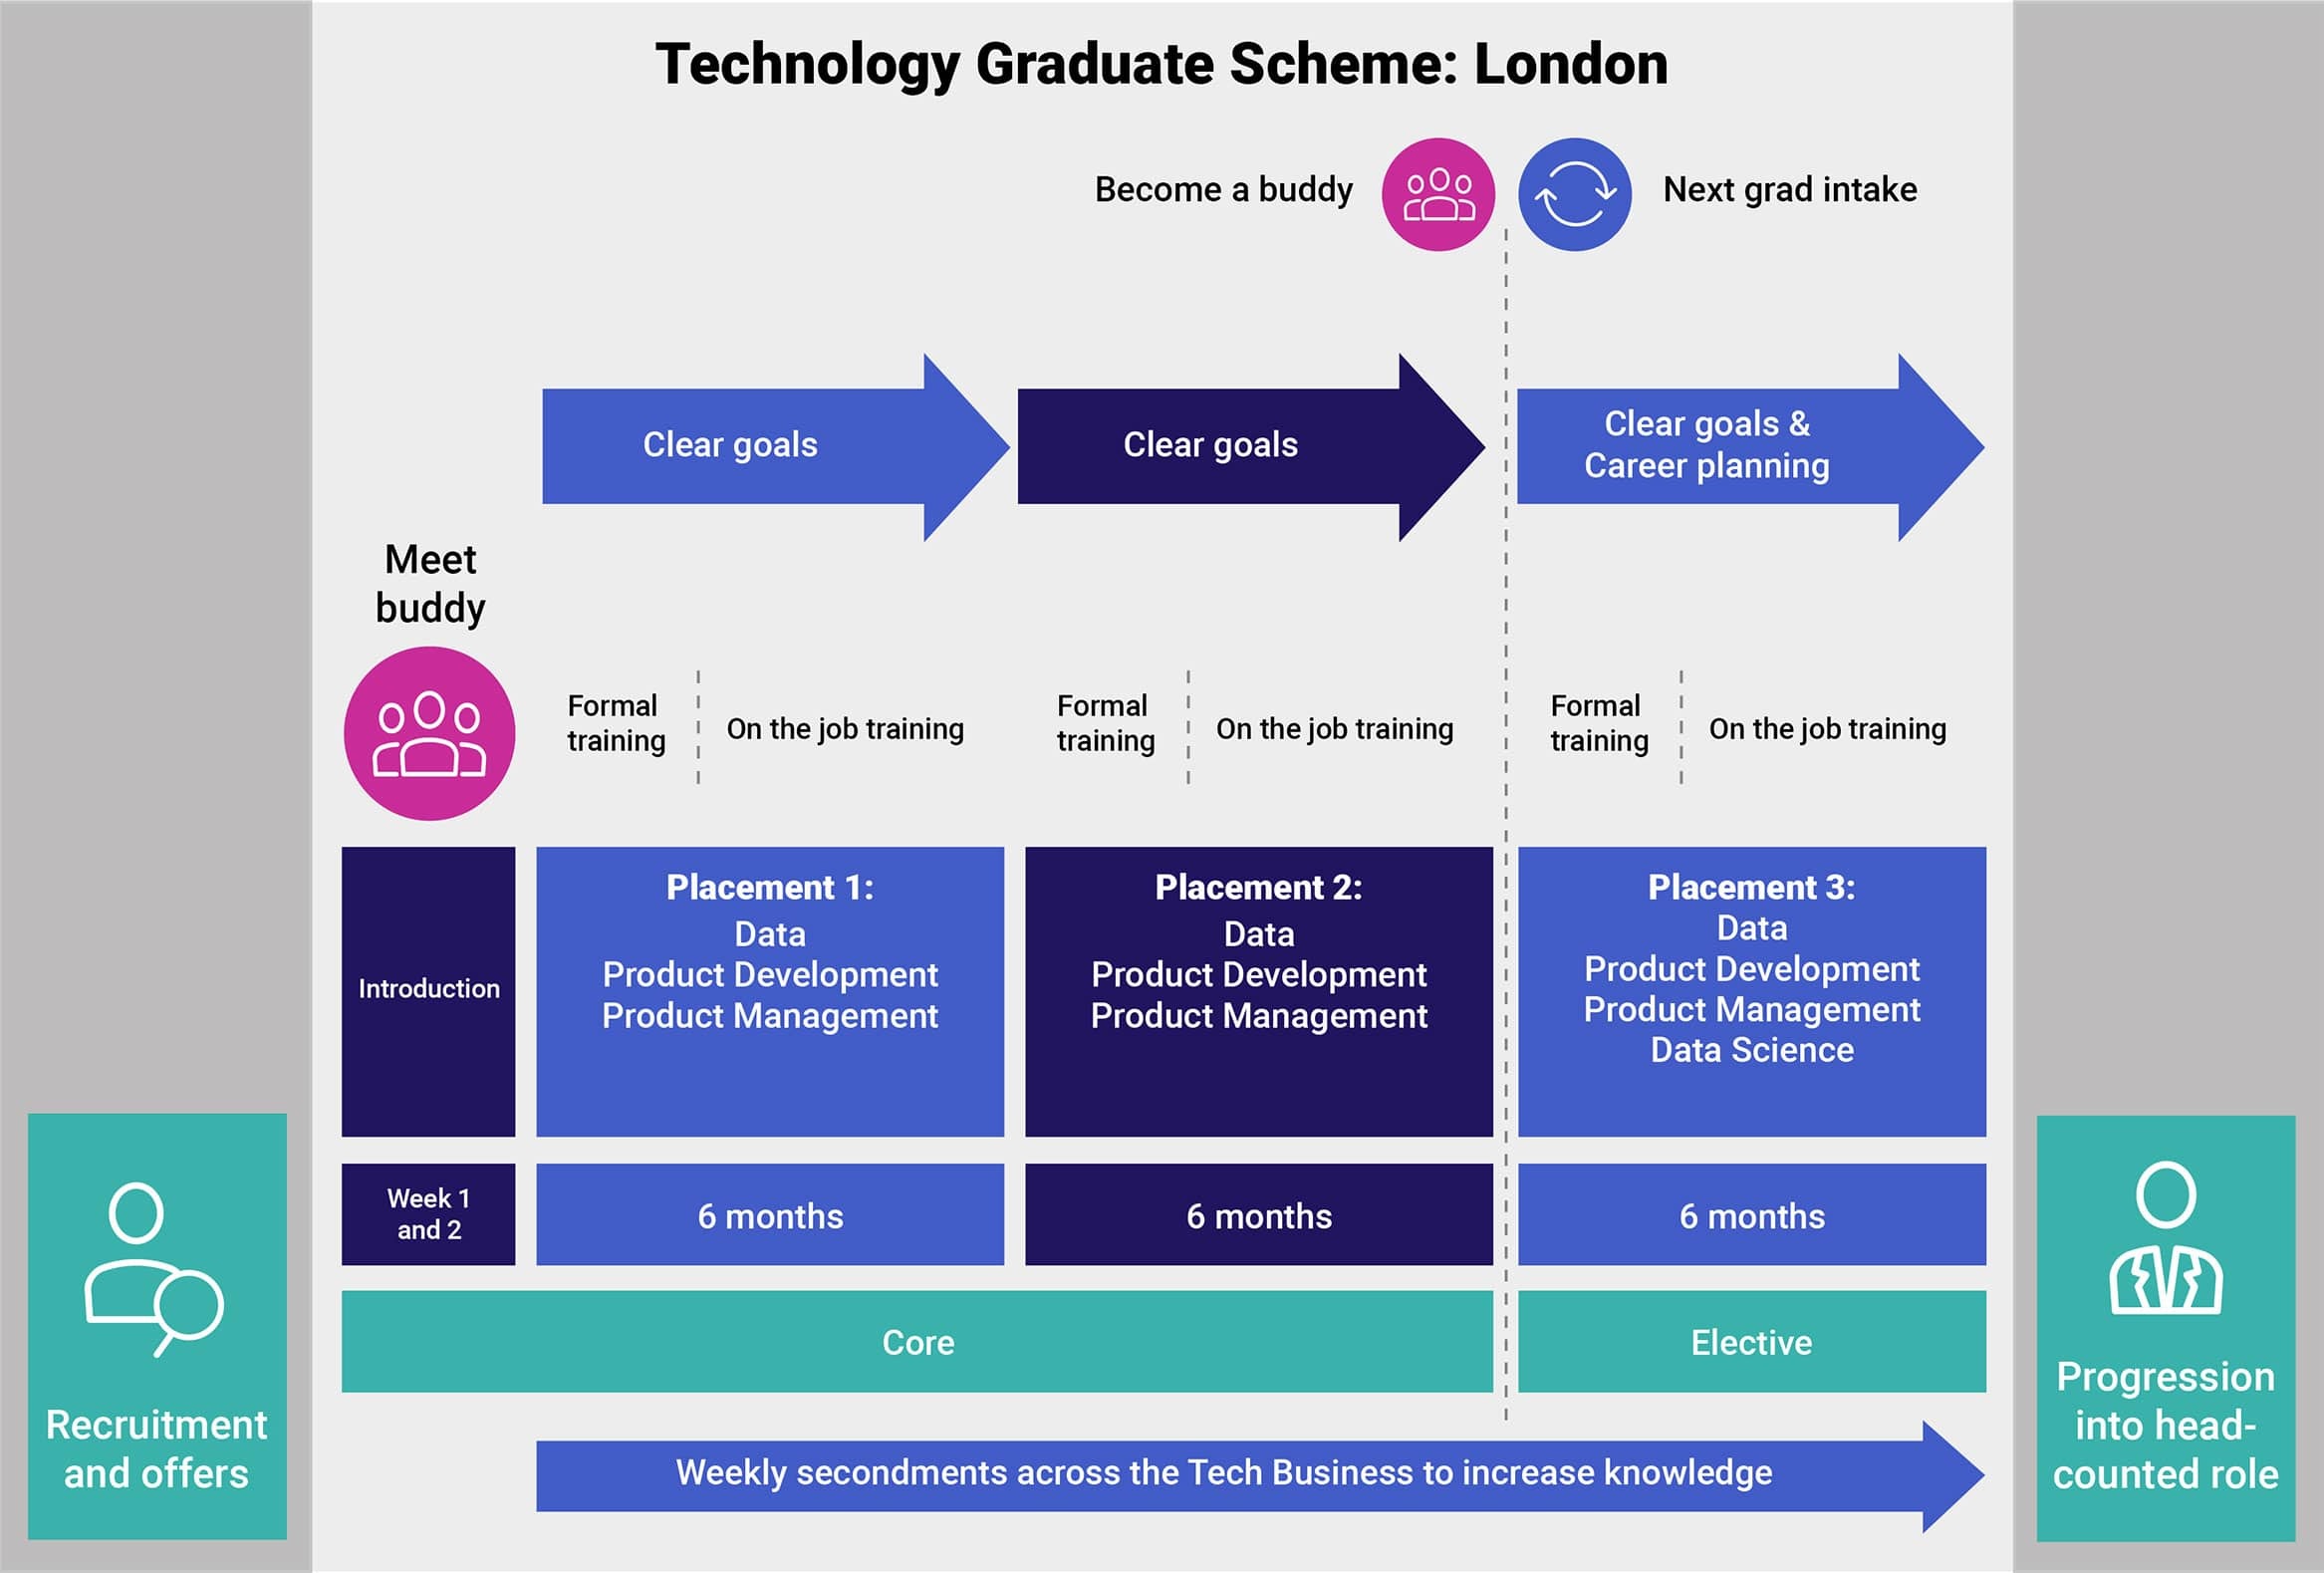 Technology & Solutions Graduate Scheme: London